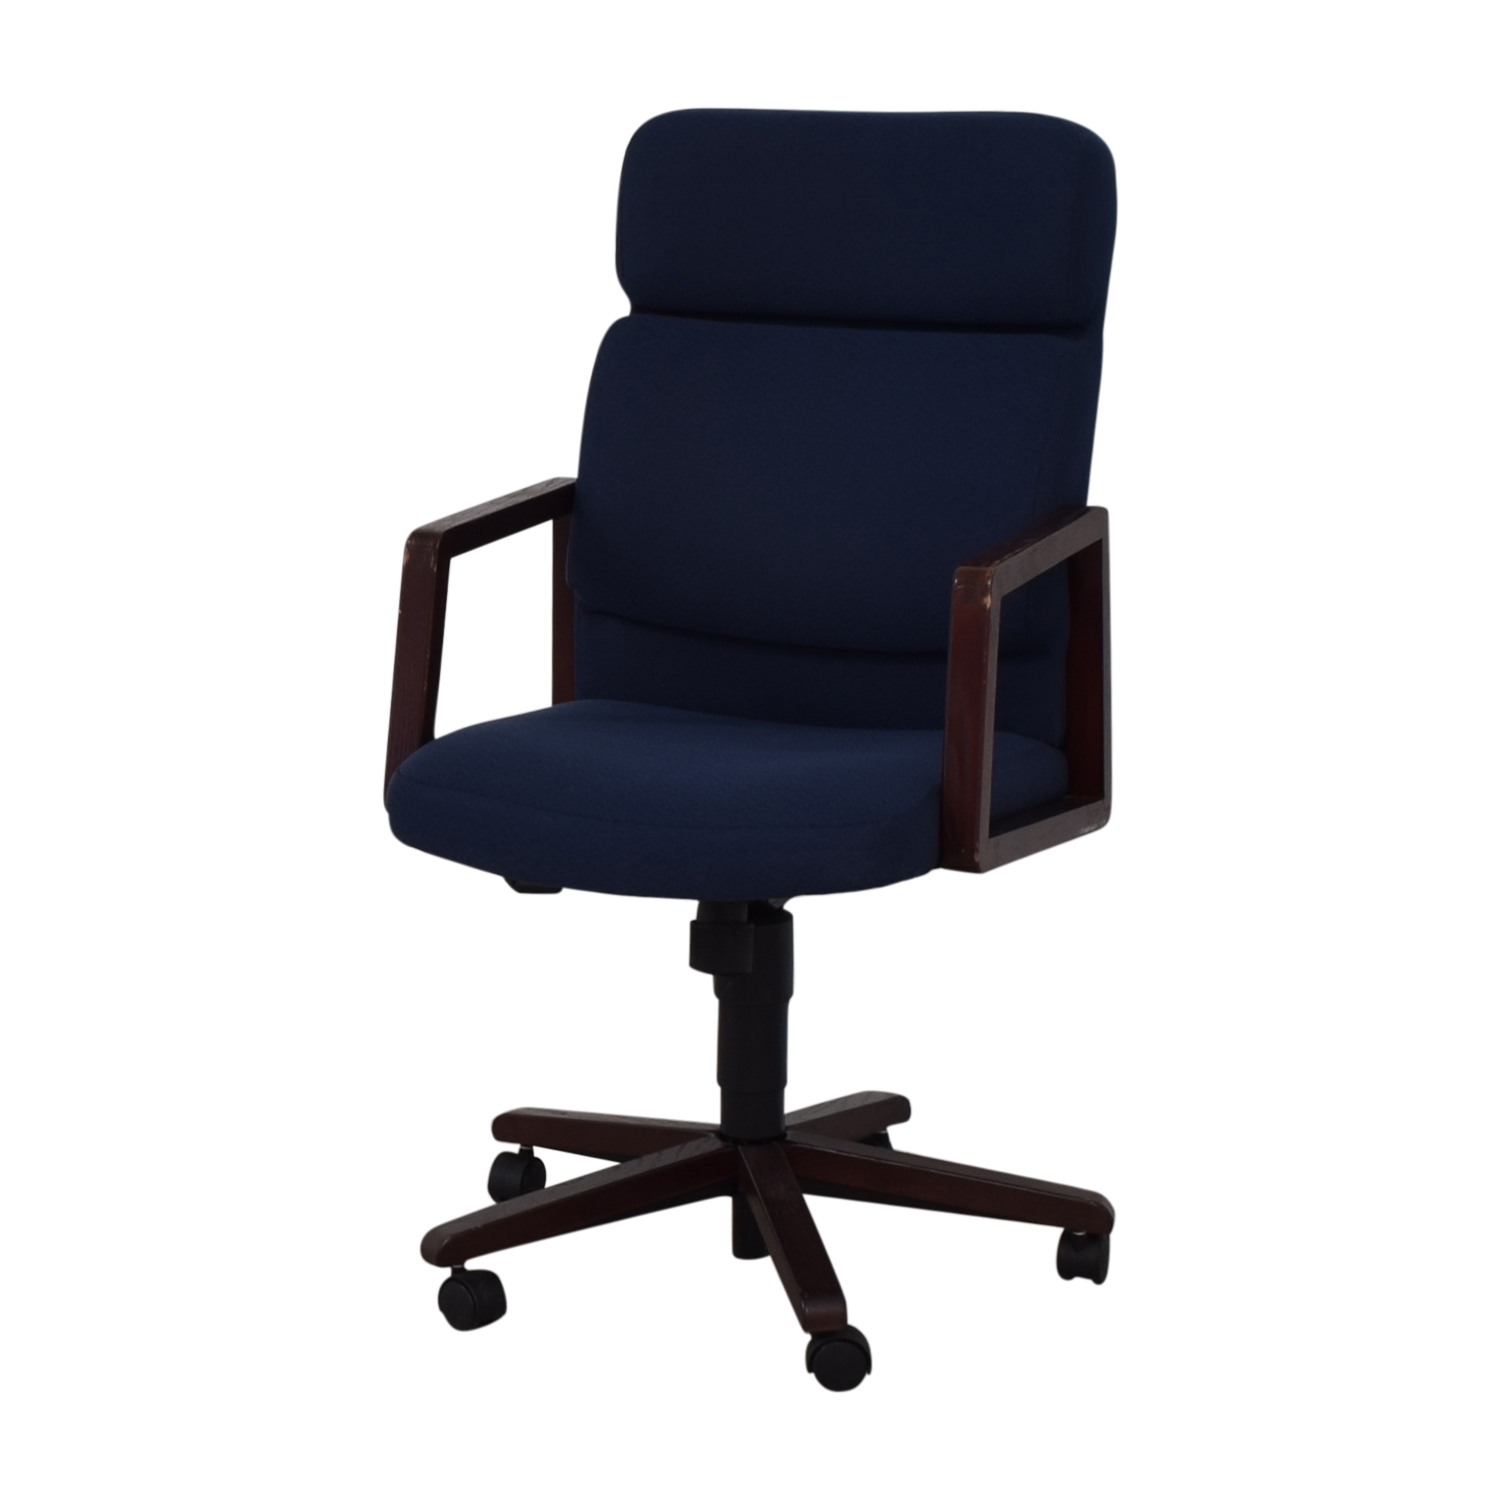 Blue Office Chair on Castors dimensions